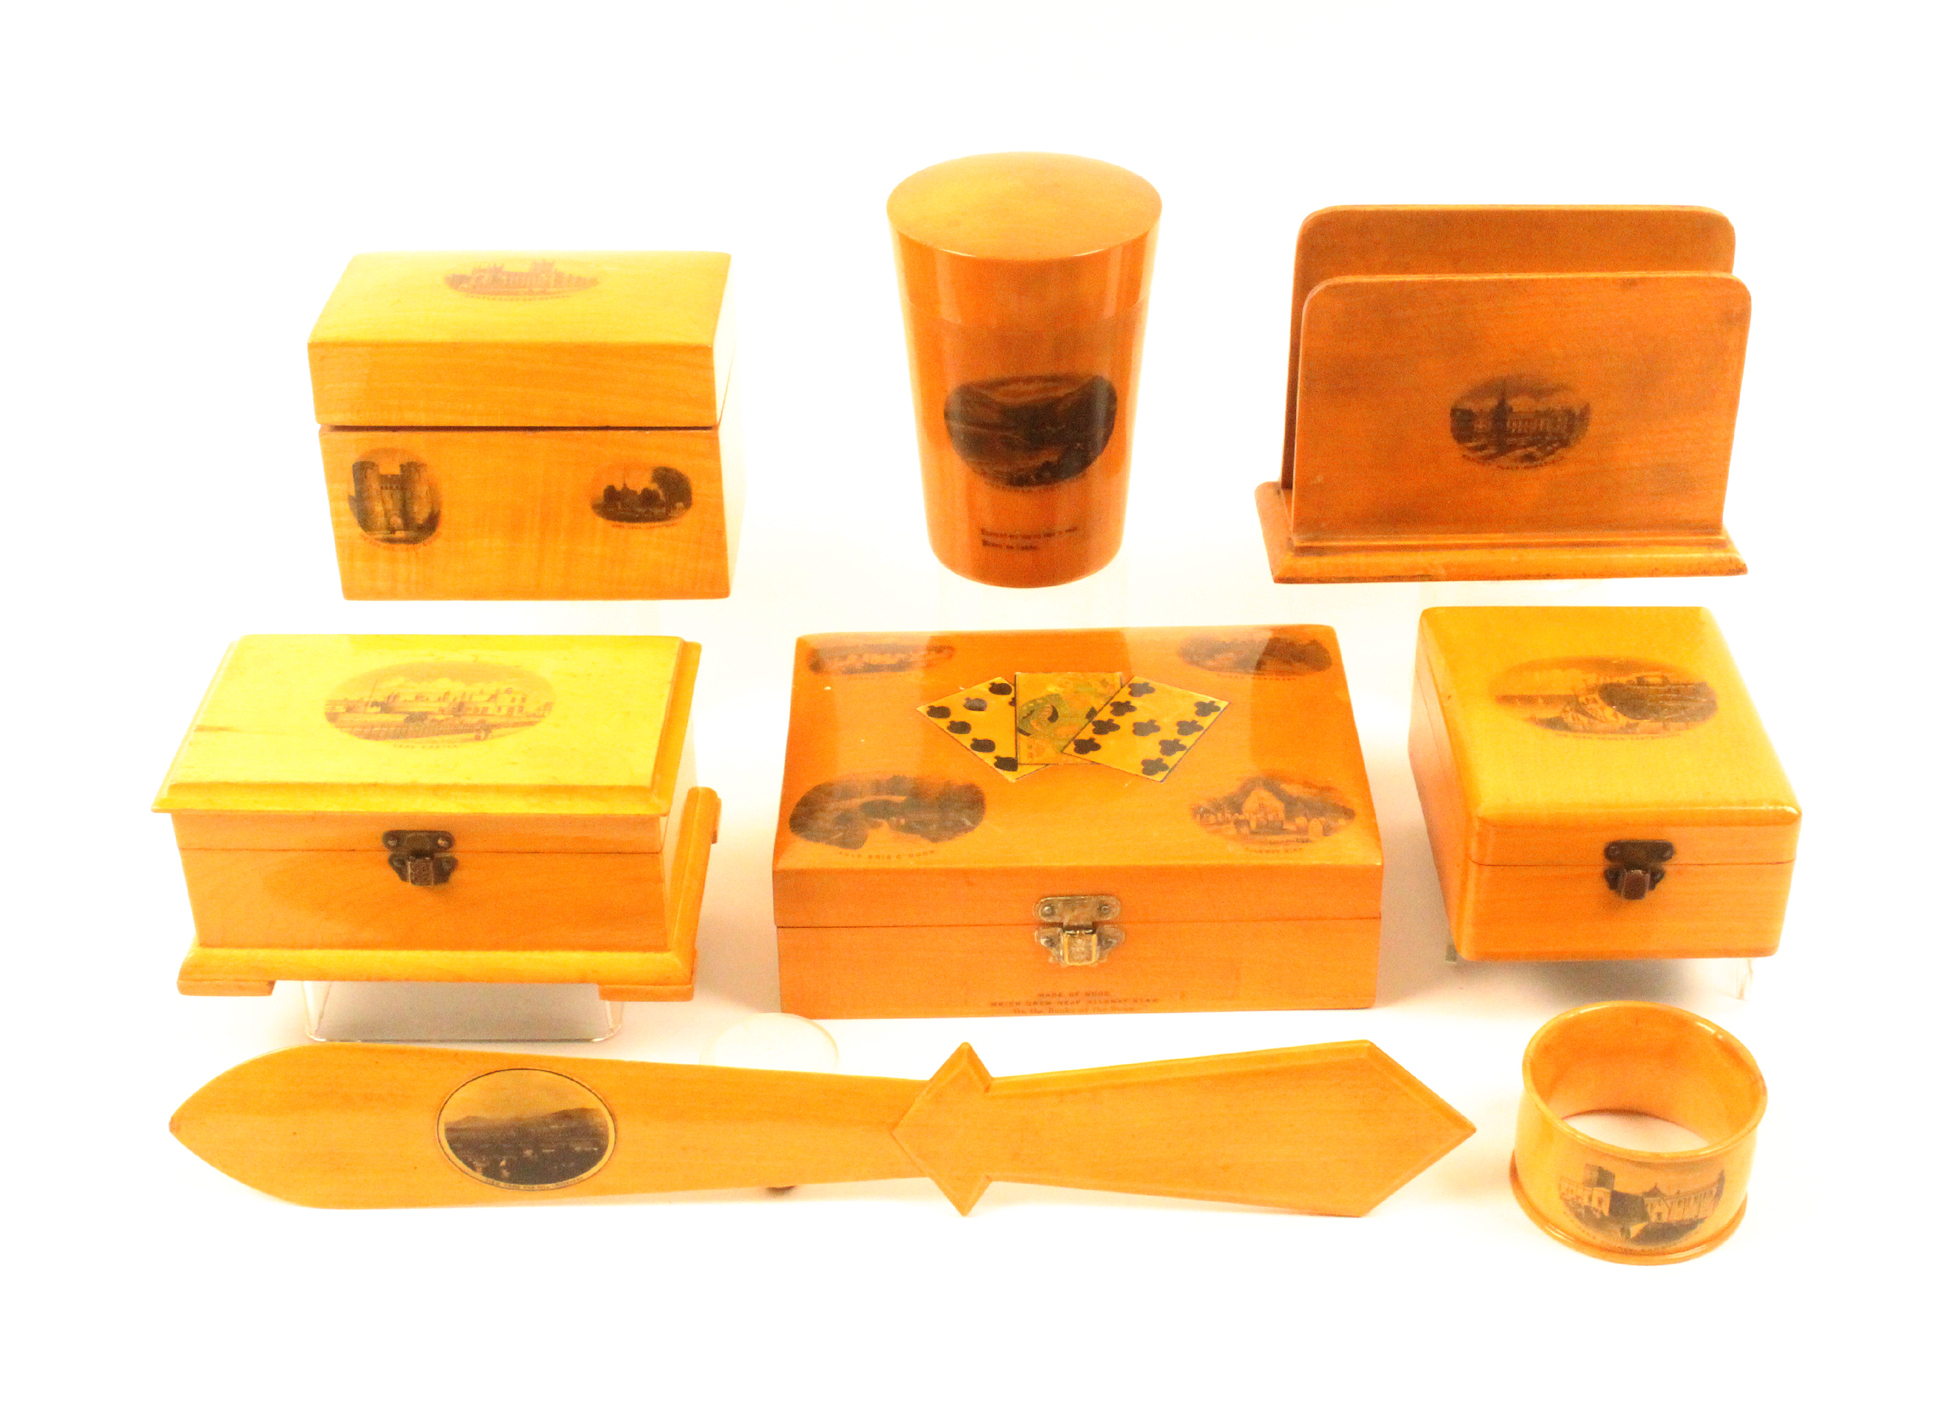 Mauchline ware - eight pieces comprising a tumbler case with Fern etched glass (Arrochar, Loch